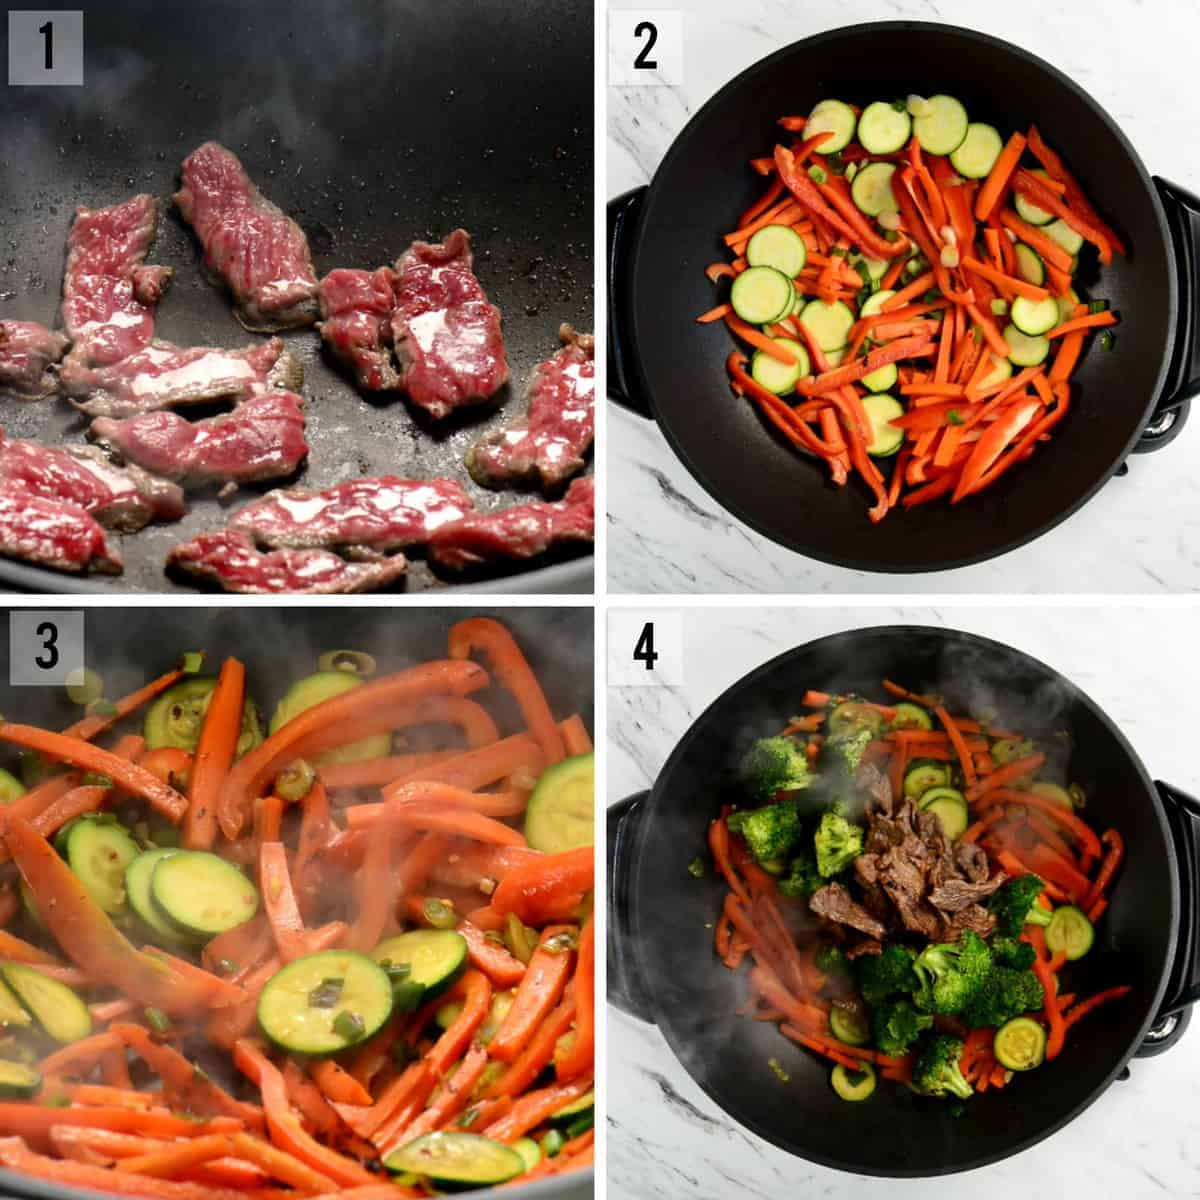 step by step process photos of how to make beef stir fry